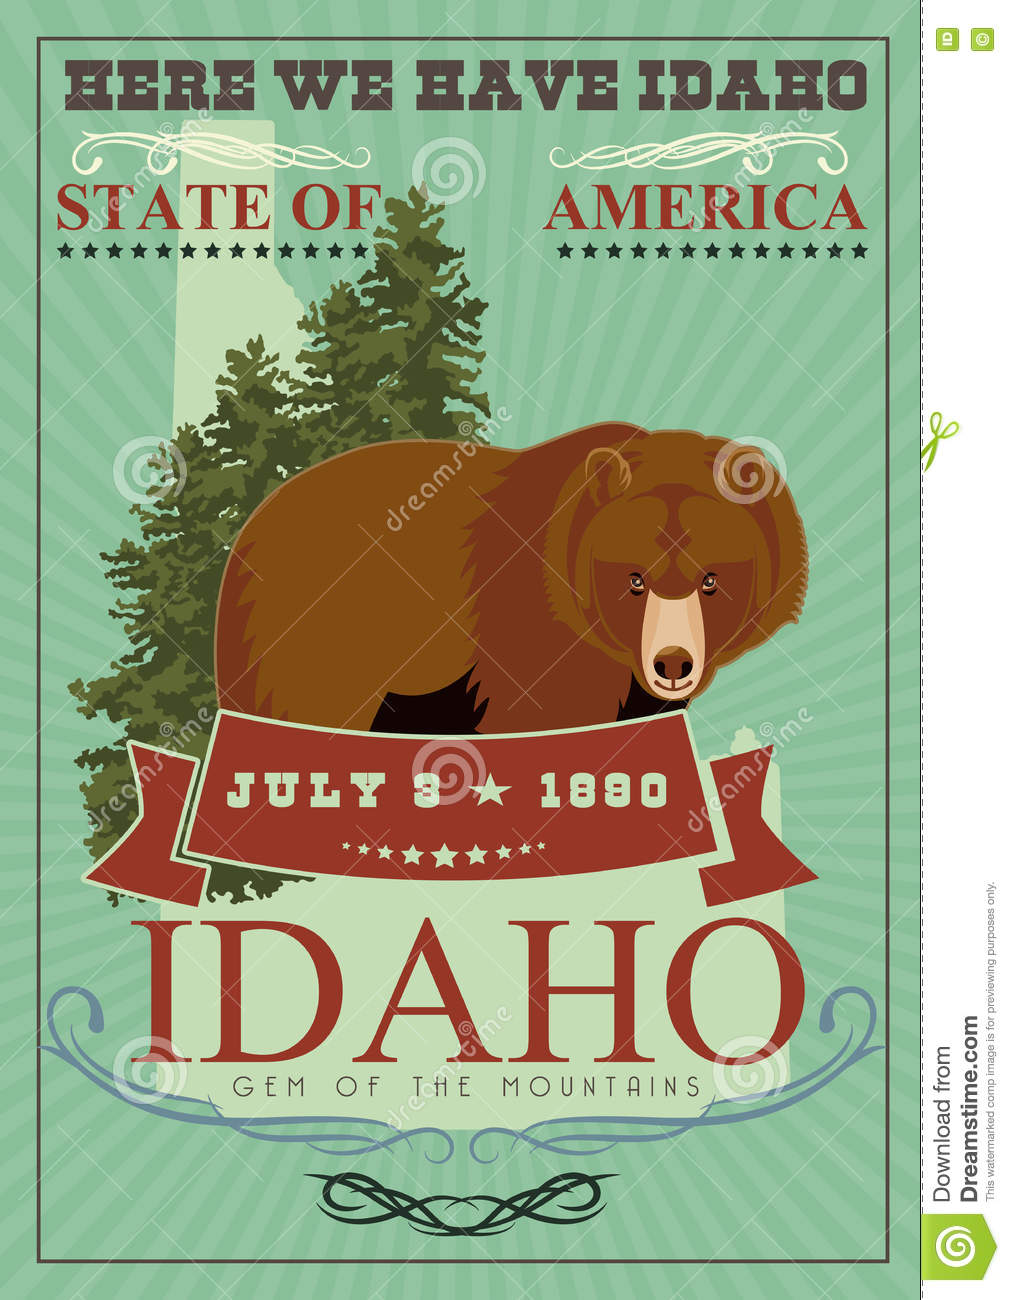 United States of America card with bear